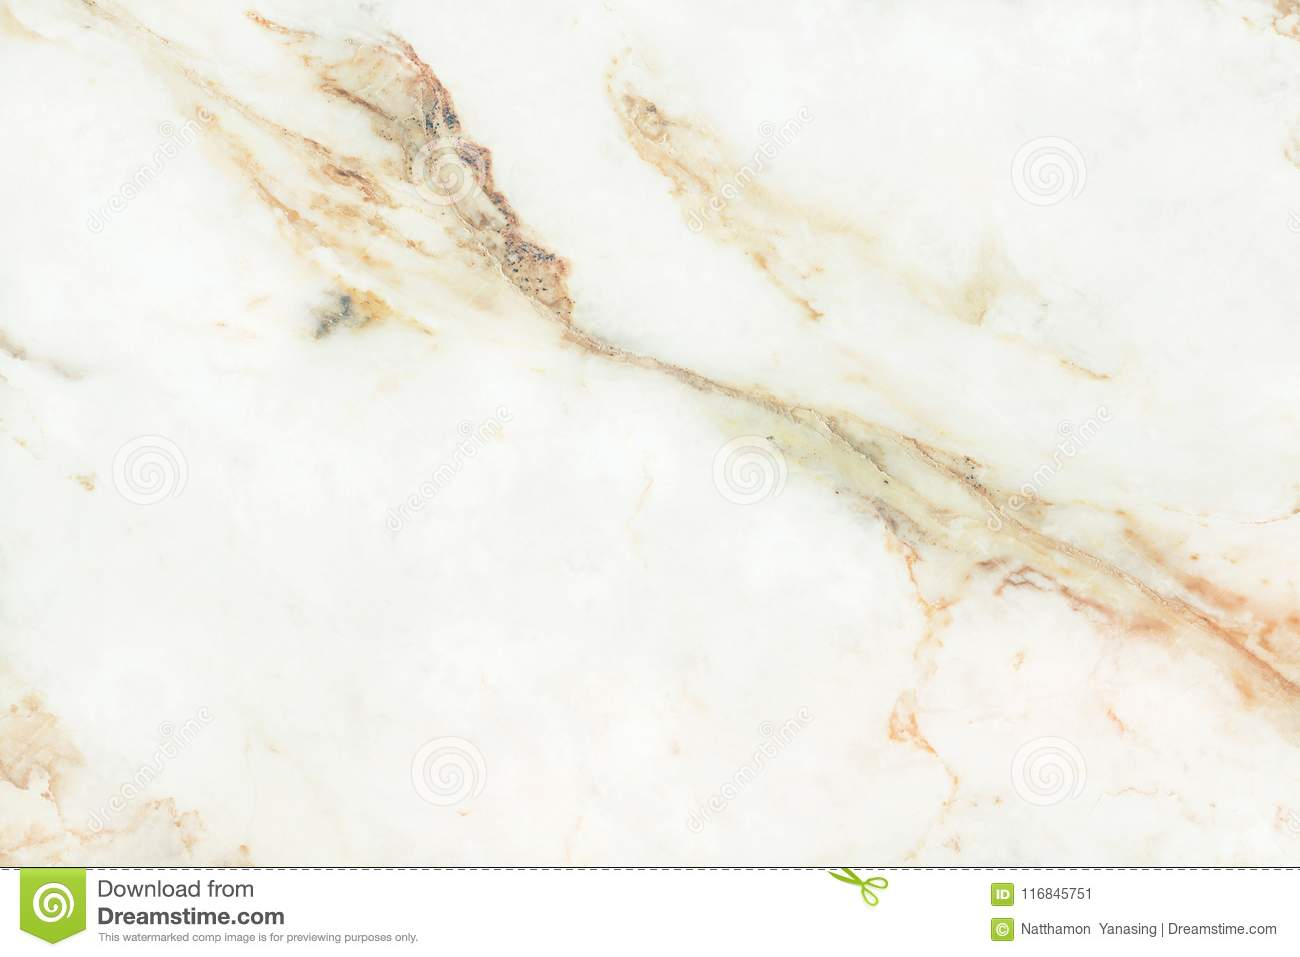 Gold White Marble Texture In Natural Pattern With High Resolution Tiles Stone Floor Stock Image Image Of Bright Exterior 116845751